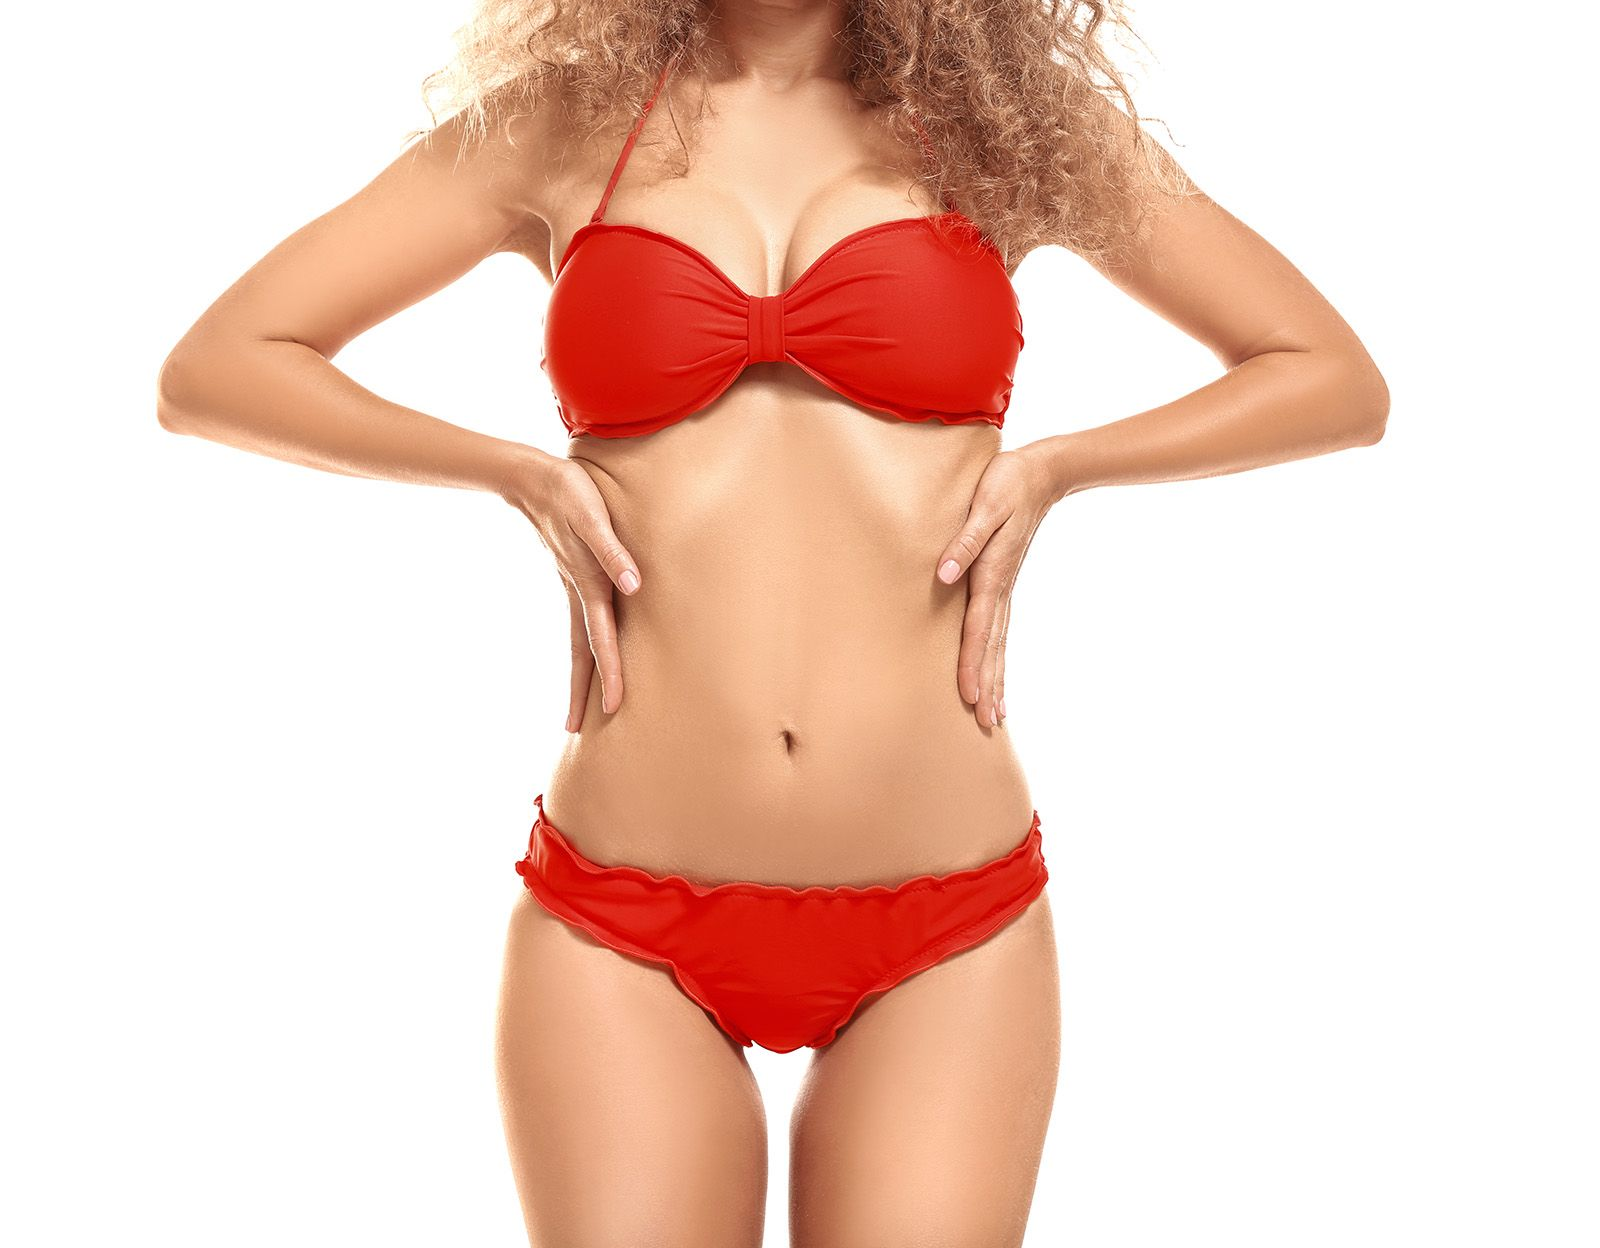 Woman with her hands on her hips wearing red underwear